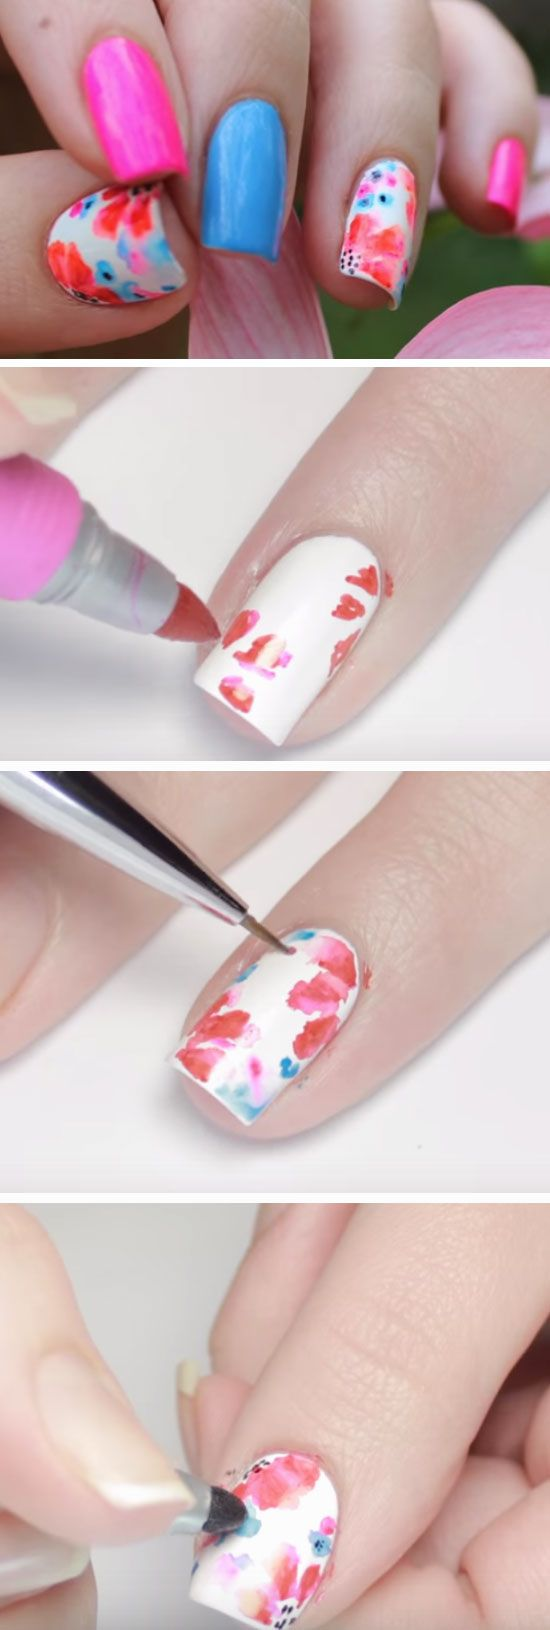 Watercolor Sharpie Nails | 18 Funky Summer Nail Art Ideas for Short Nails that scream summer!